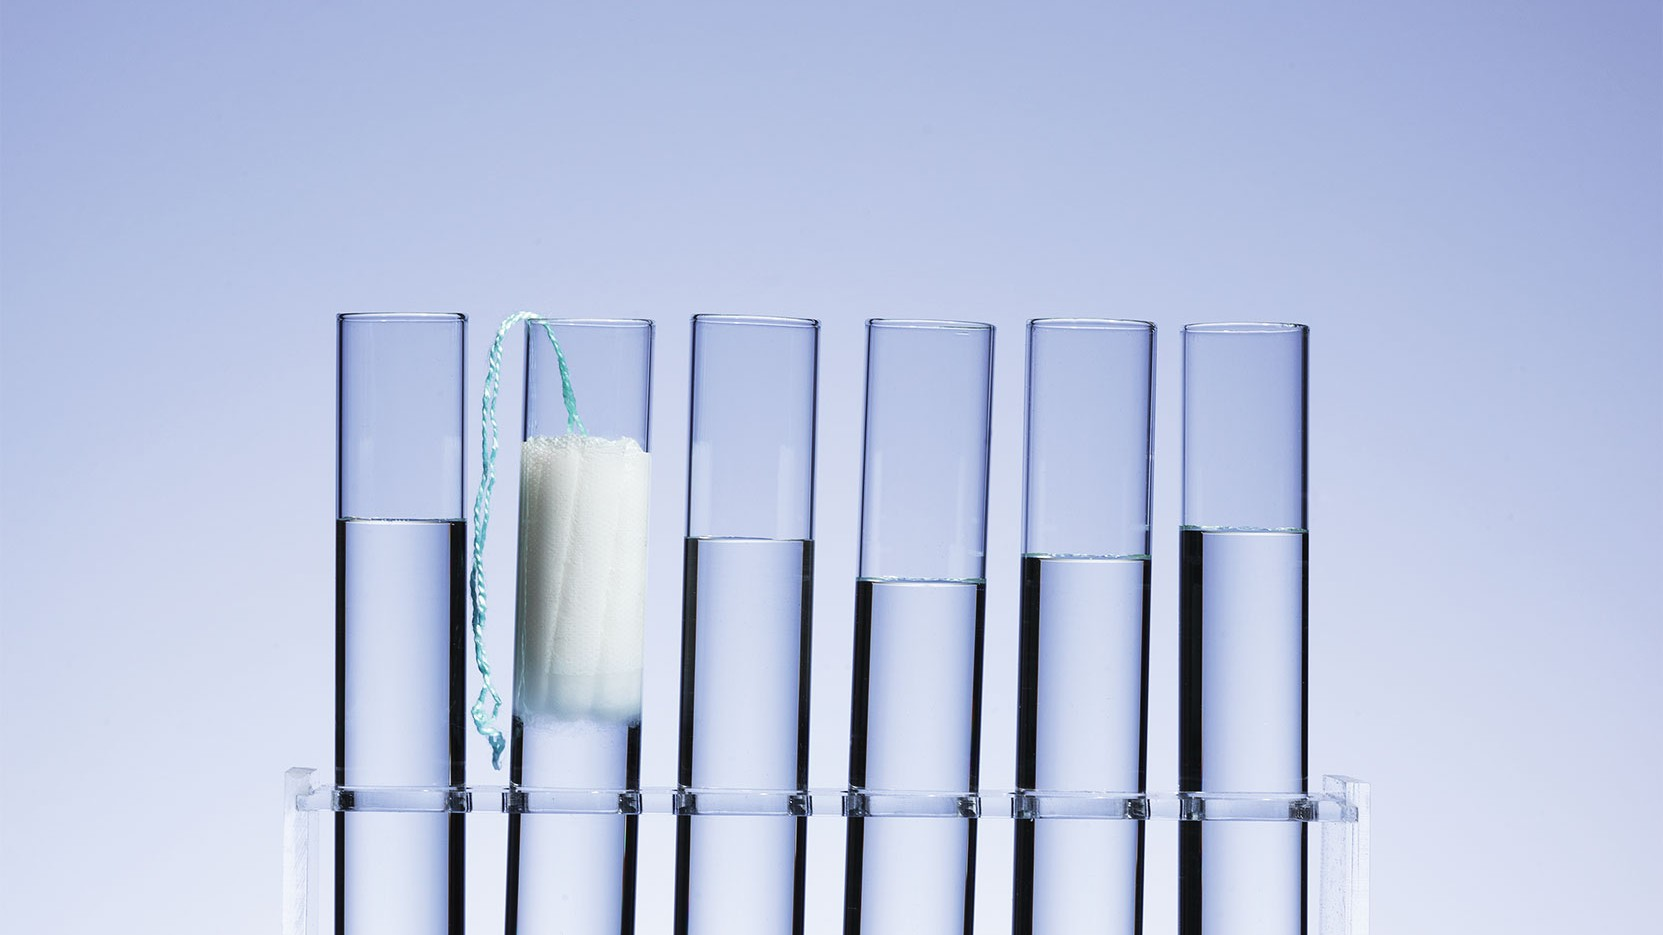 What if you could diagnose diseases with a tampon? - MIT